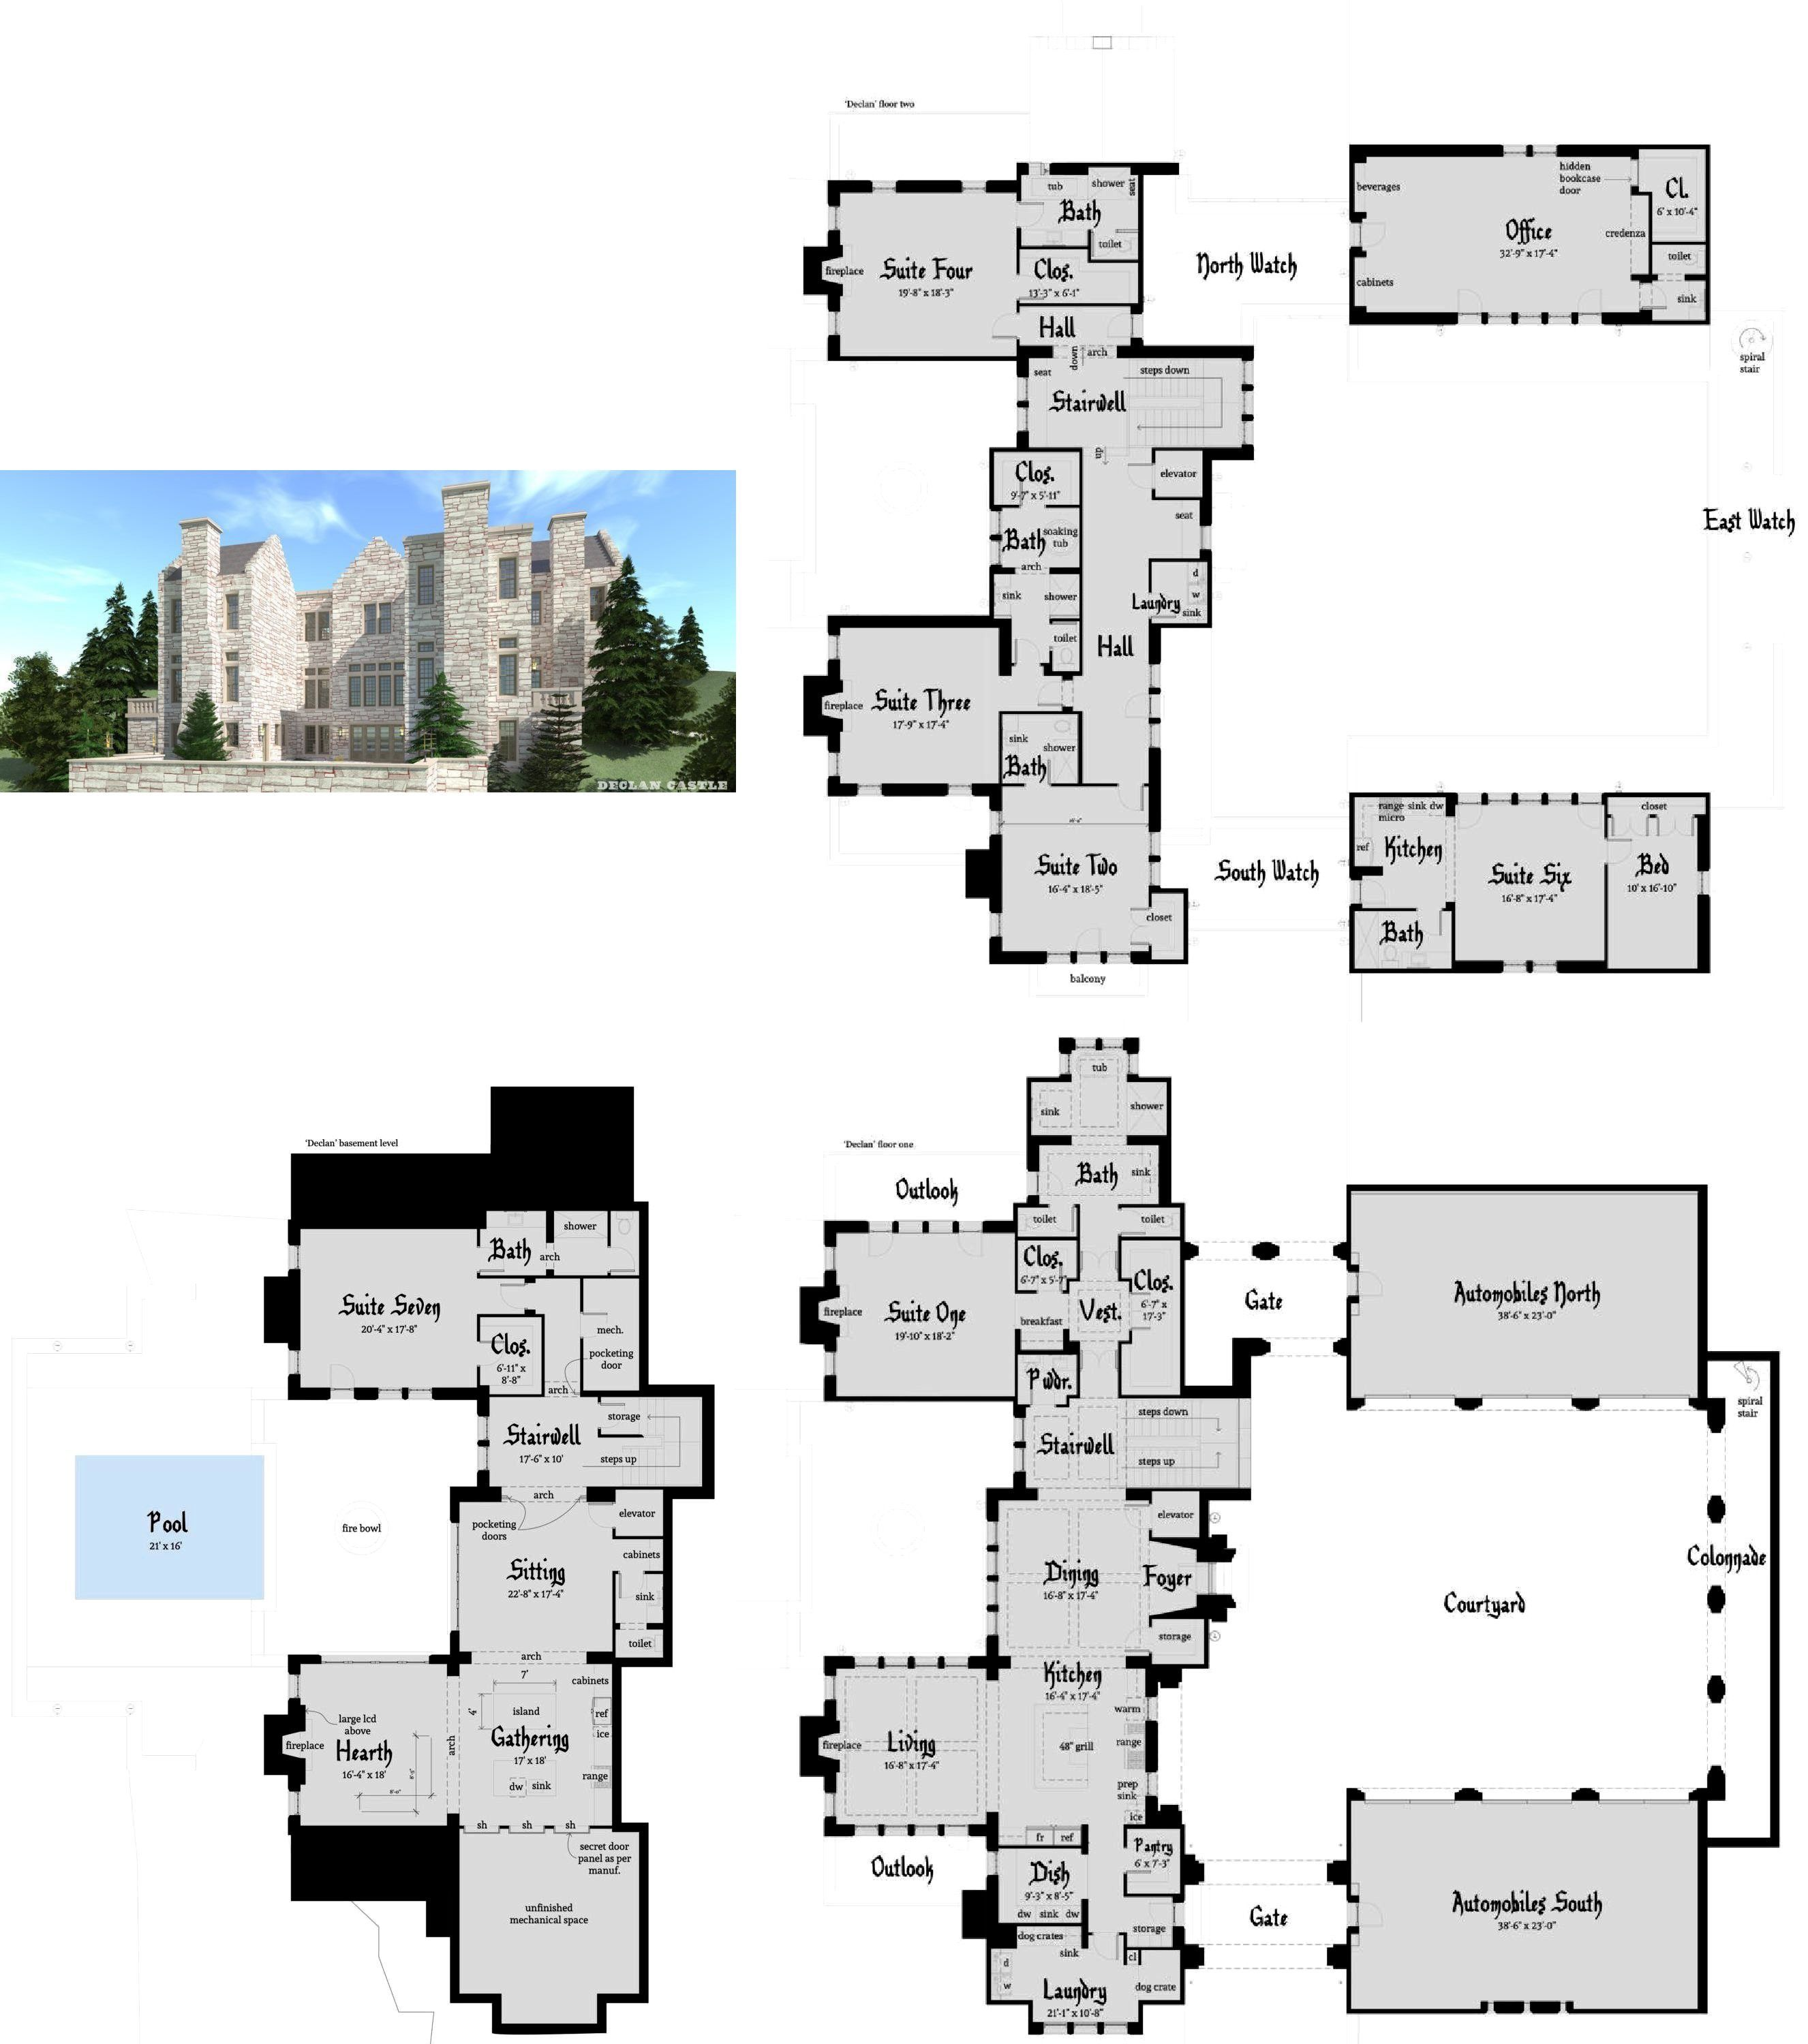 Large Castle Home 6 Car Garage Tyree House Plans Castle House Plans Castle Floor Plan Castle Plans